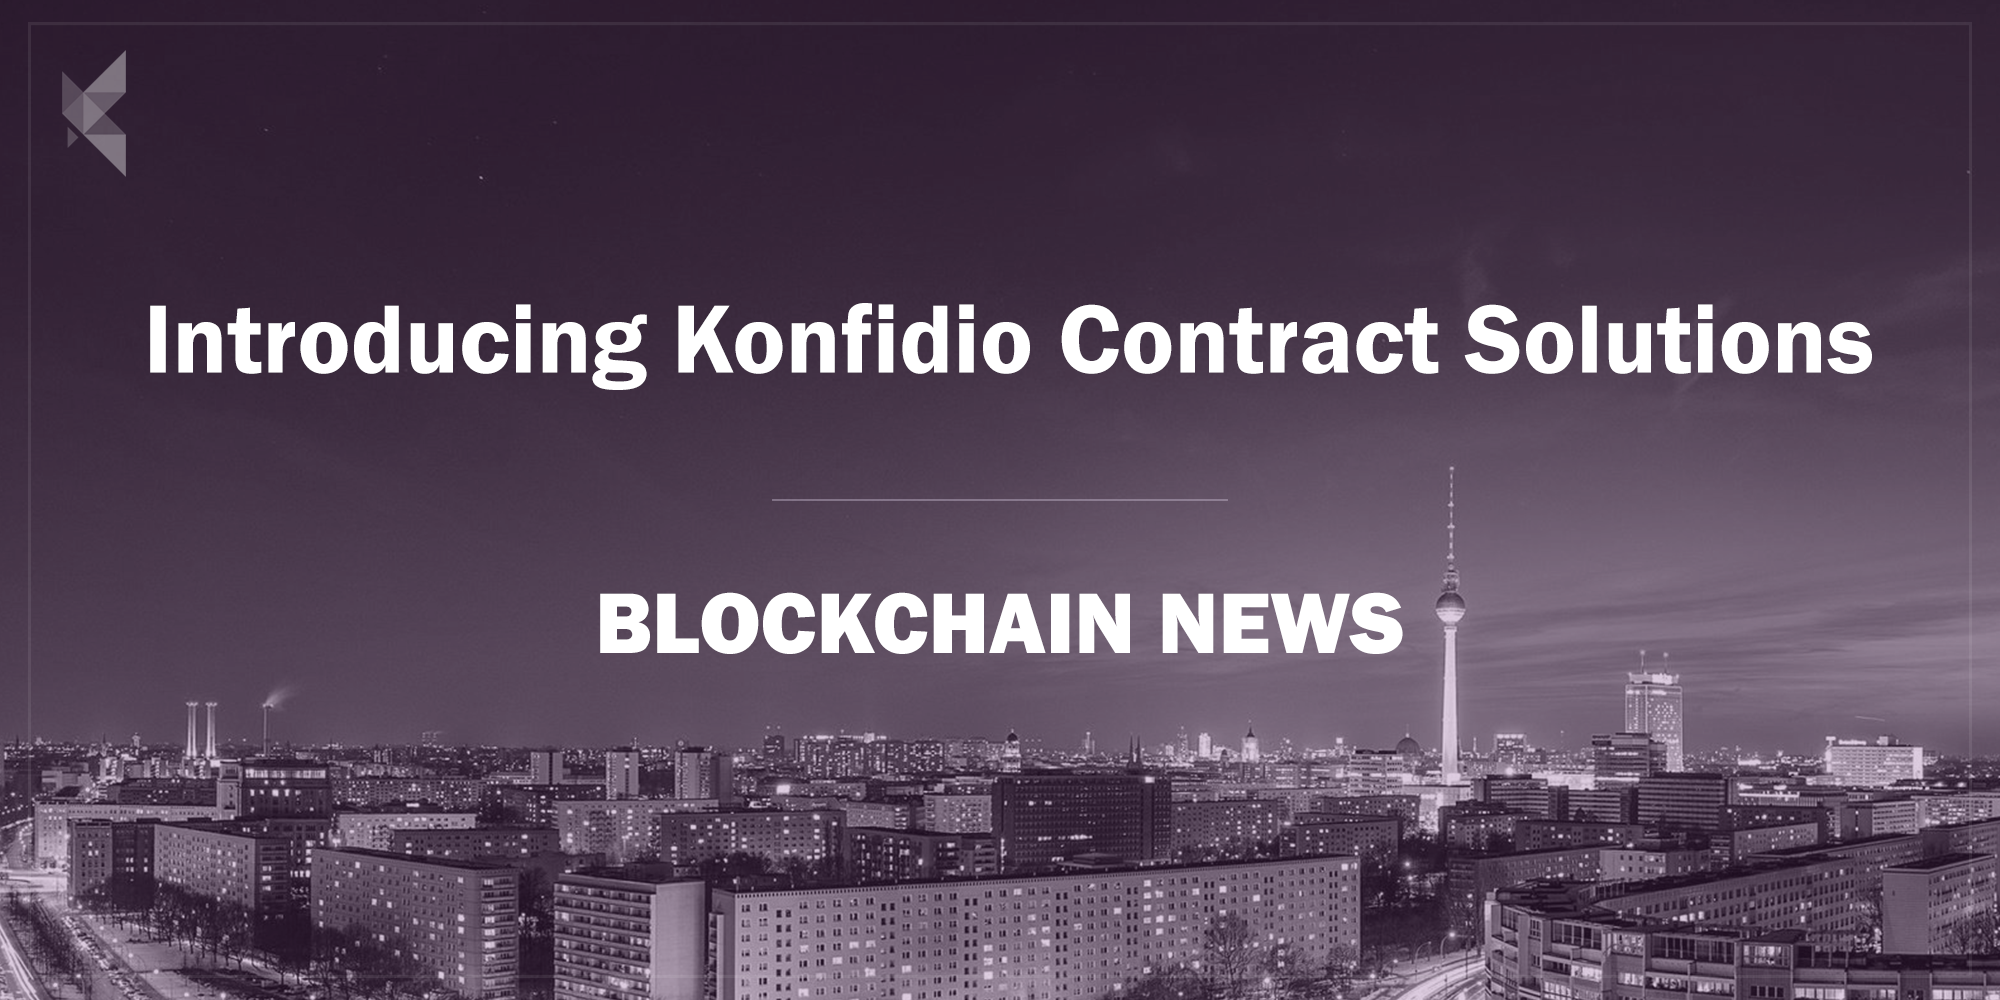 Introducing Konfidio Contract Solutions